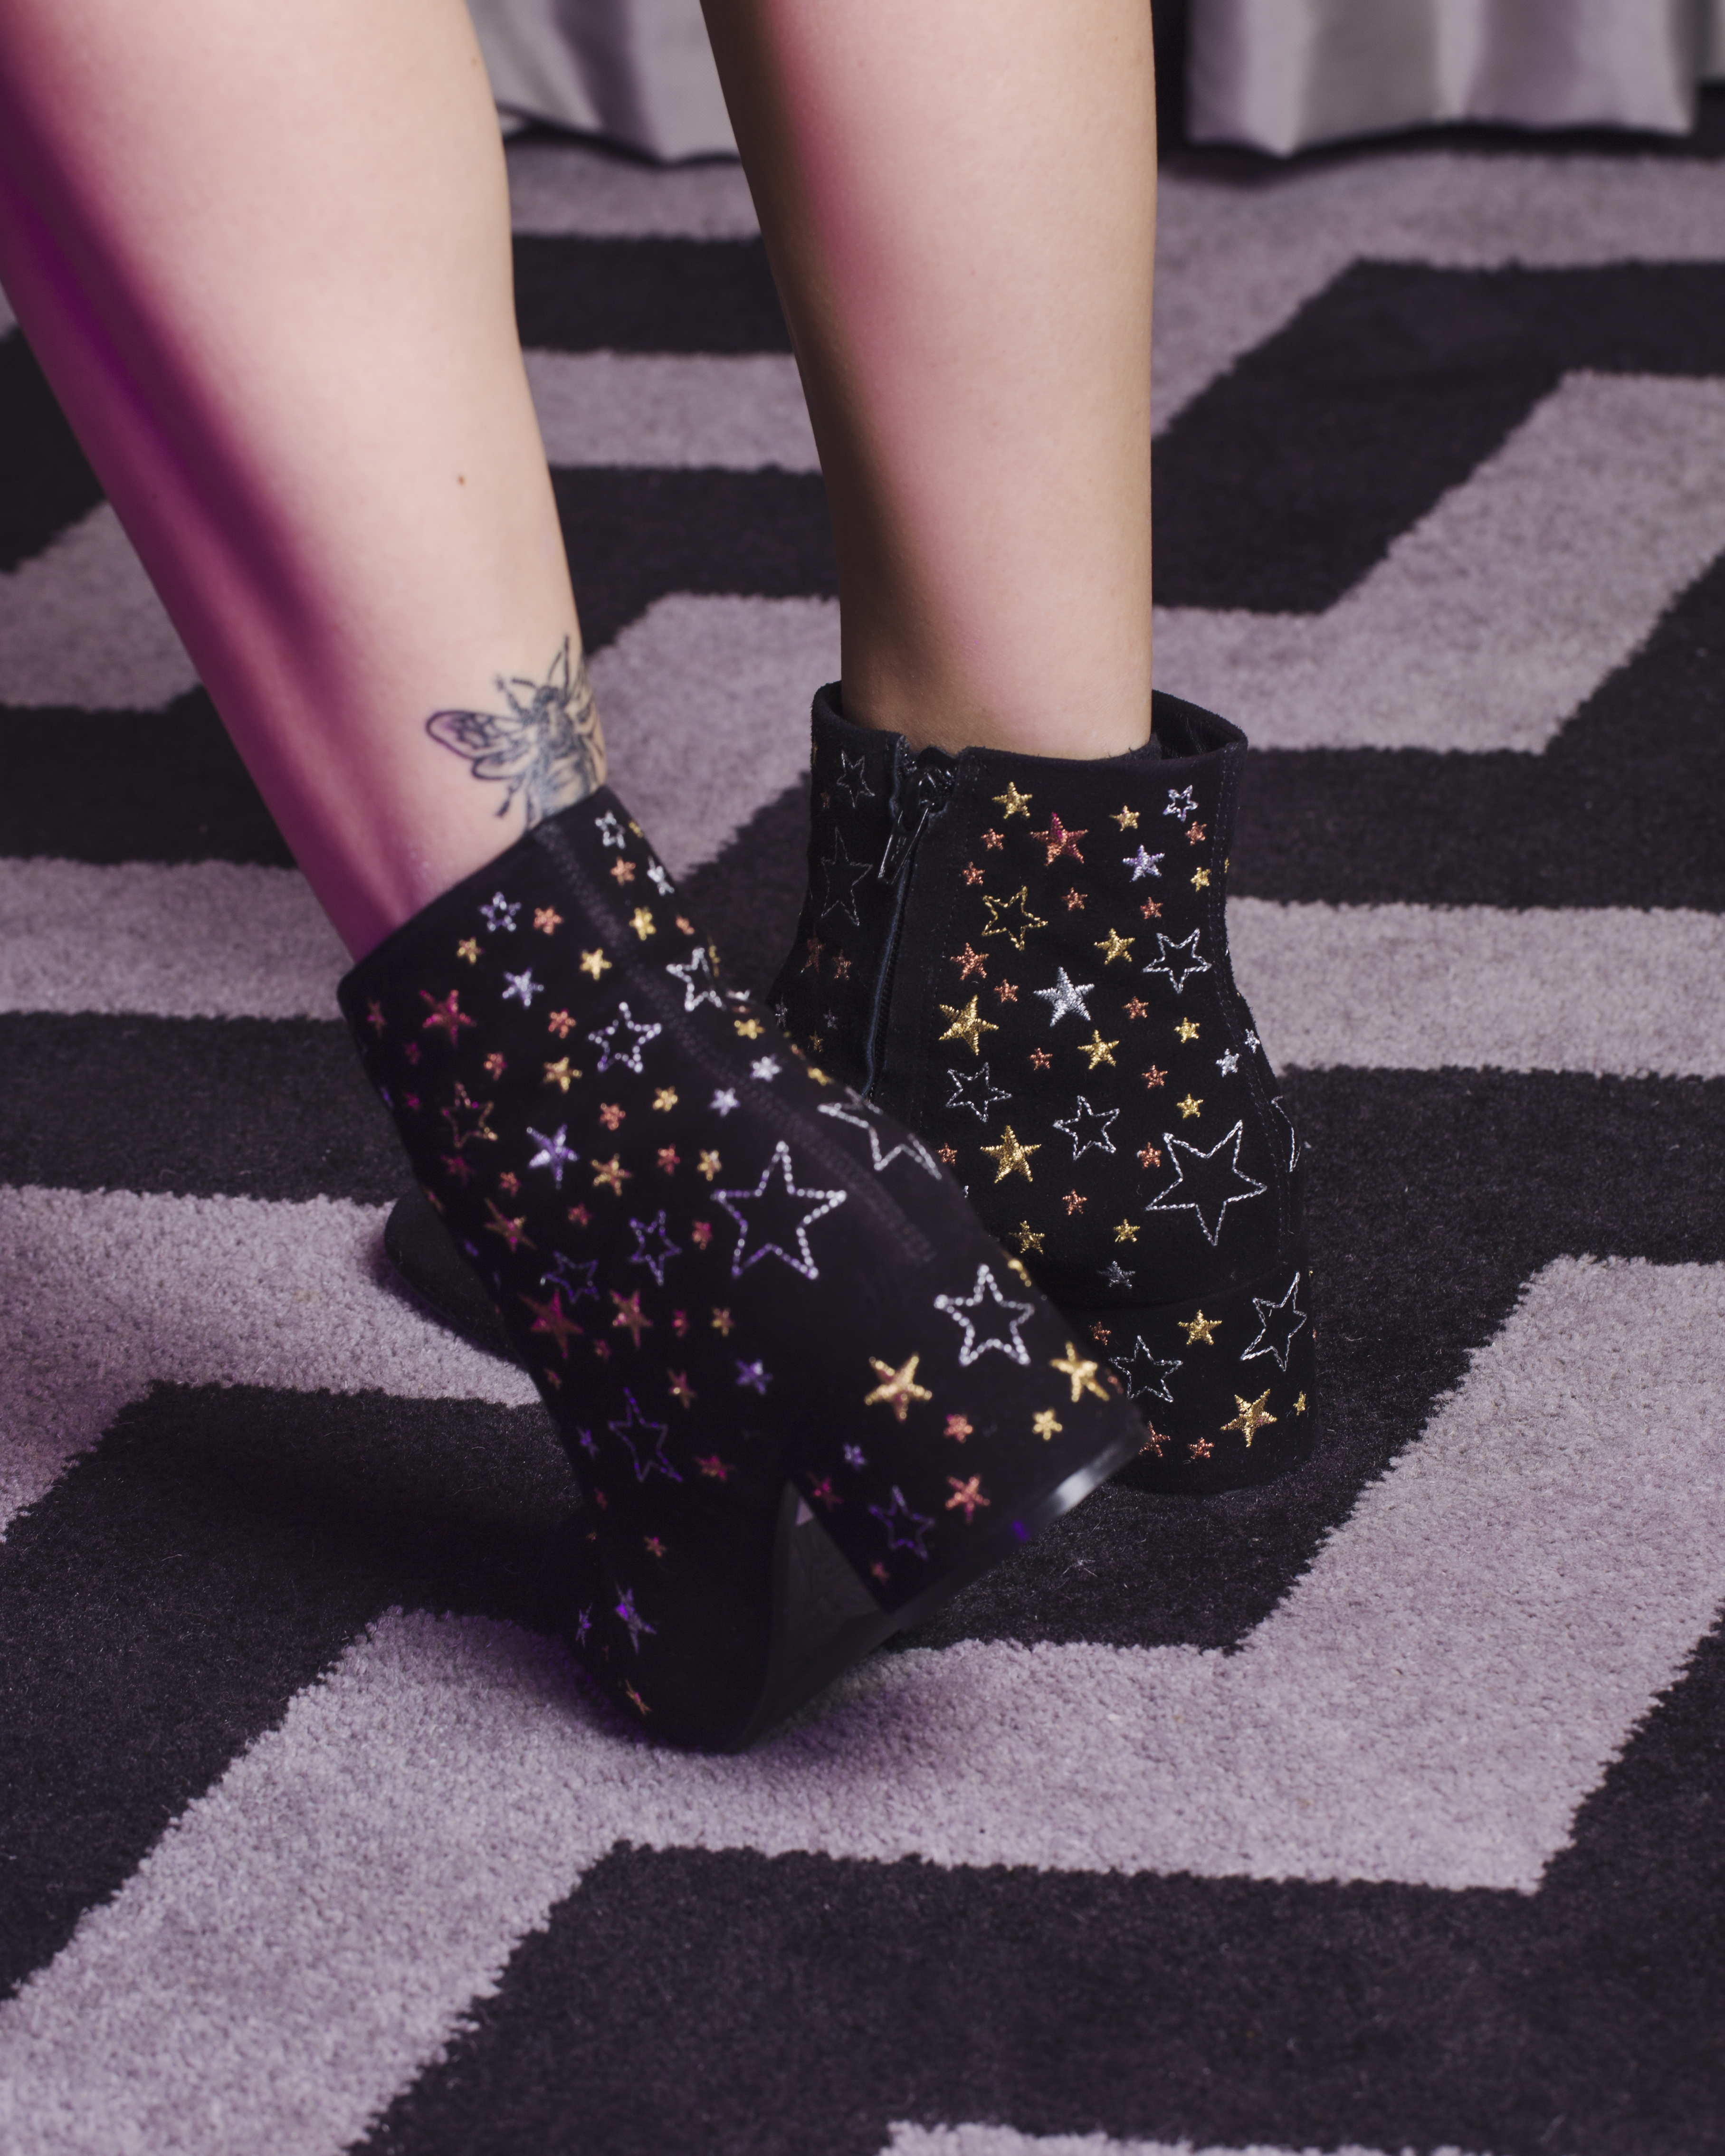 MEGAN ELLABY'S BEE TATTOO WITH STAR PRINT BOOTS BY DUNE